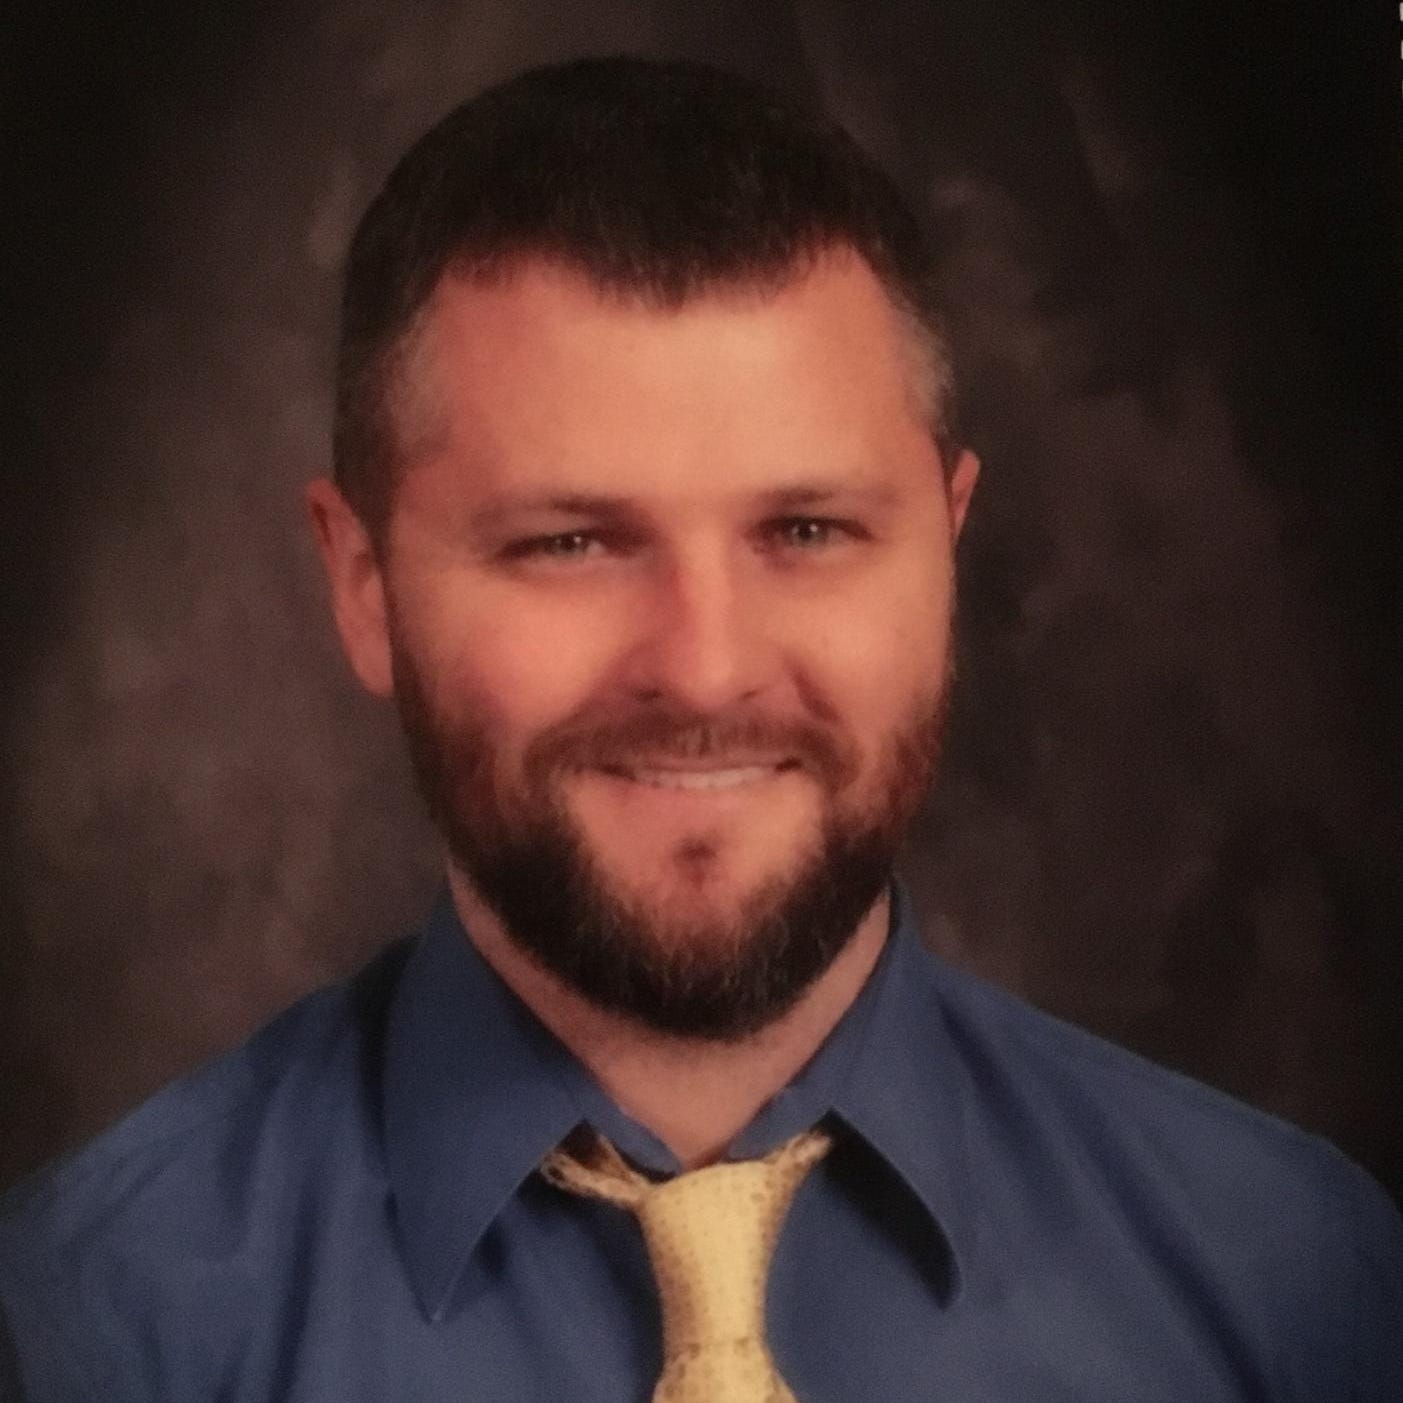 Teacher of the Week: Lodge's Kyle Lawton works to build relationships with his students